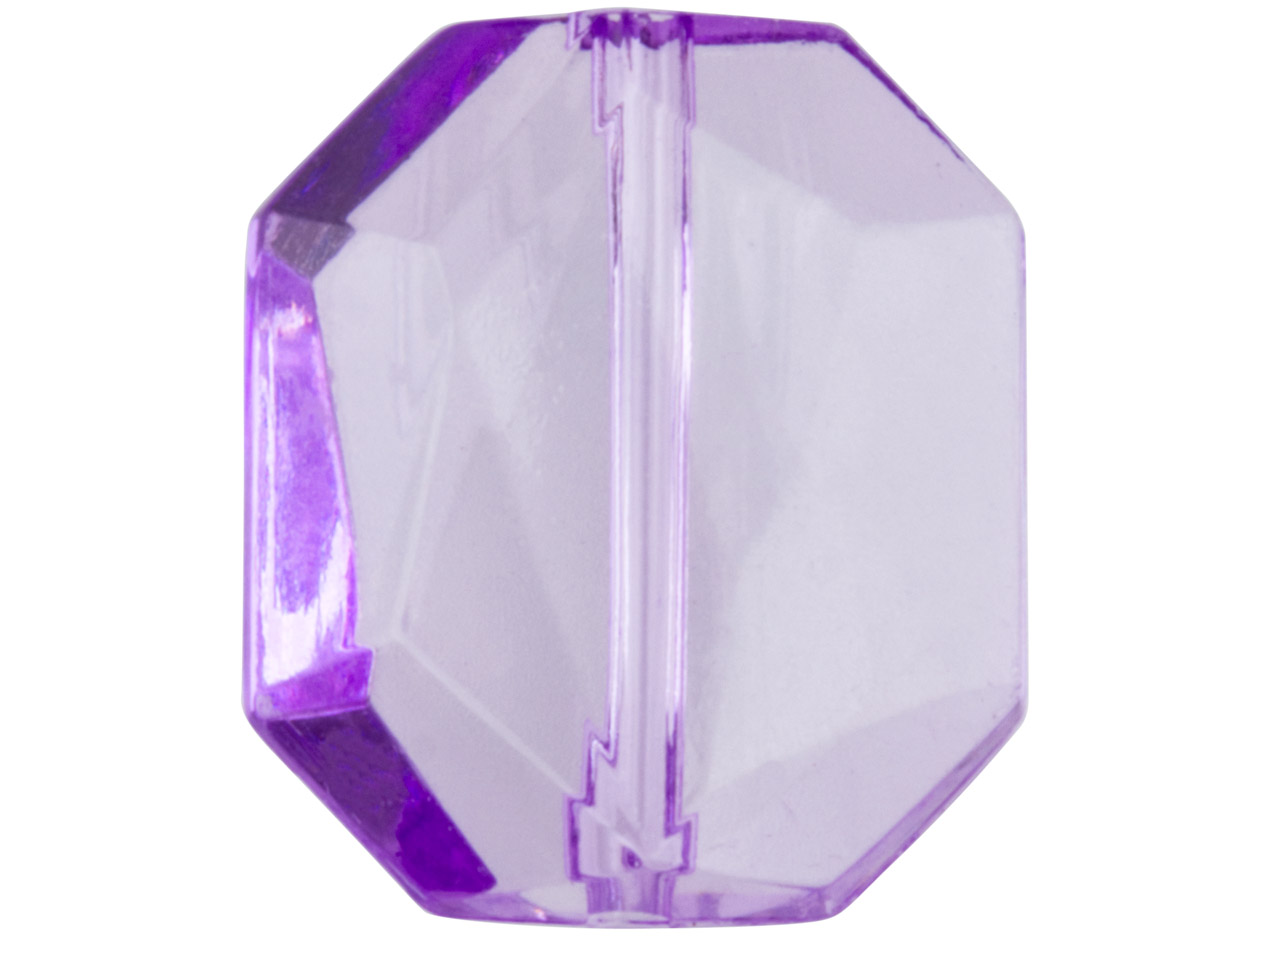 Violet Faceted Cut Corners         Rectanglar 18x16mm Lucite Beads    Pack of 20